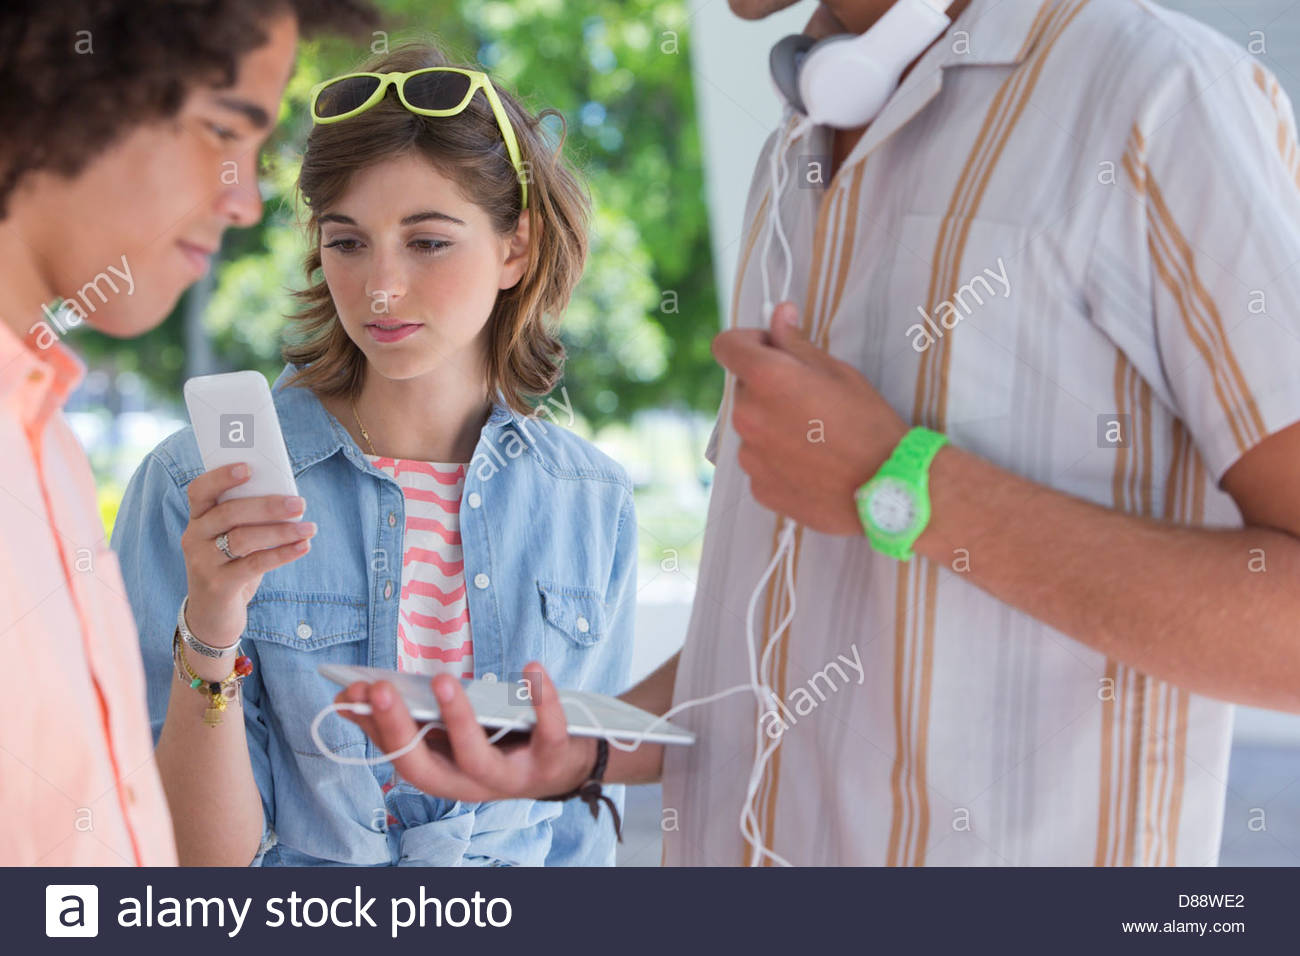 Friends using cell phone and digital tablet - Stock Image